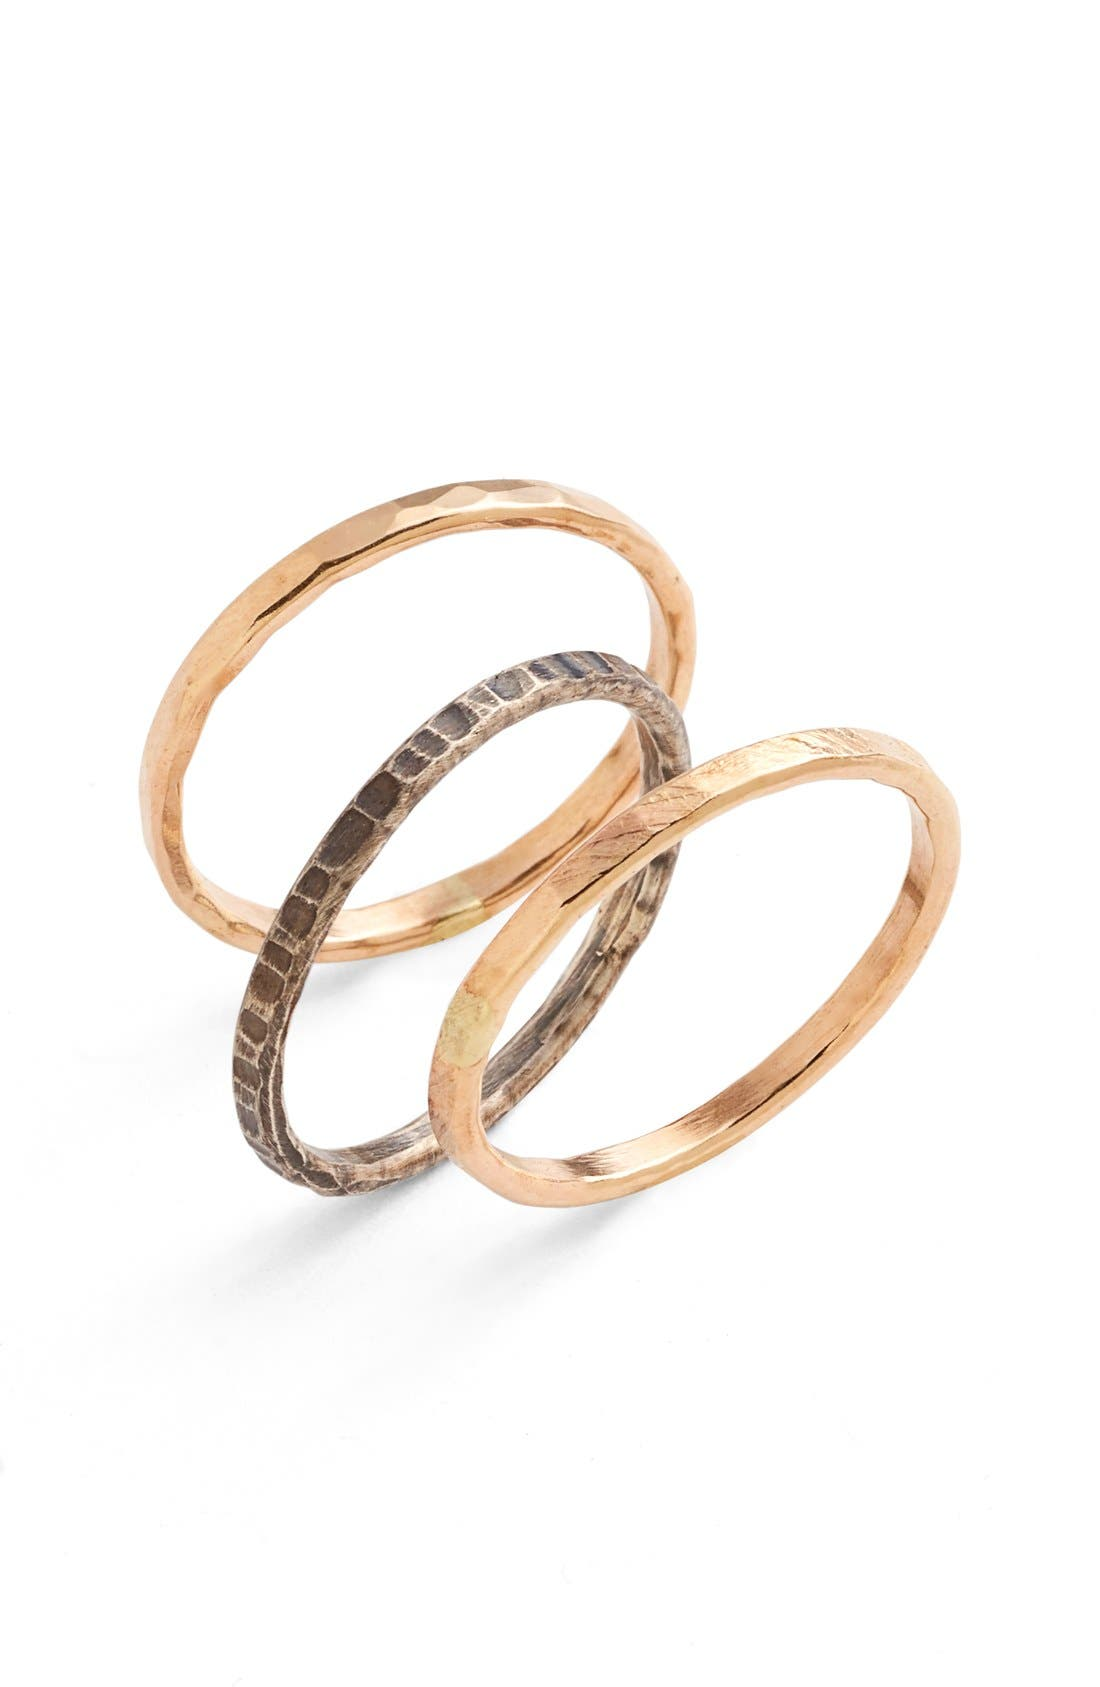 Alternate Image 1 Selected - Nashelle Ija Stackable Hammered Rings (Set of 3)